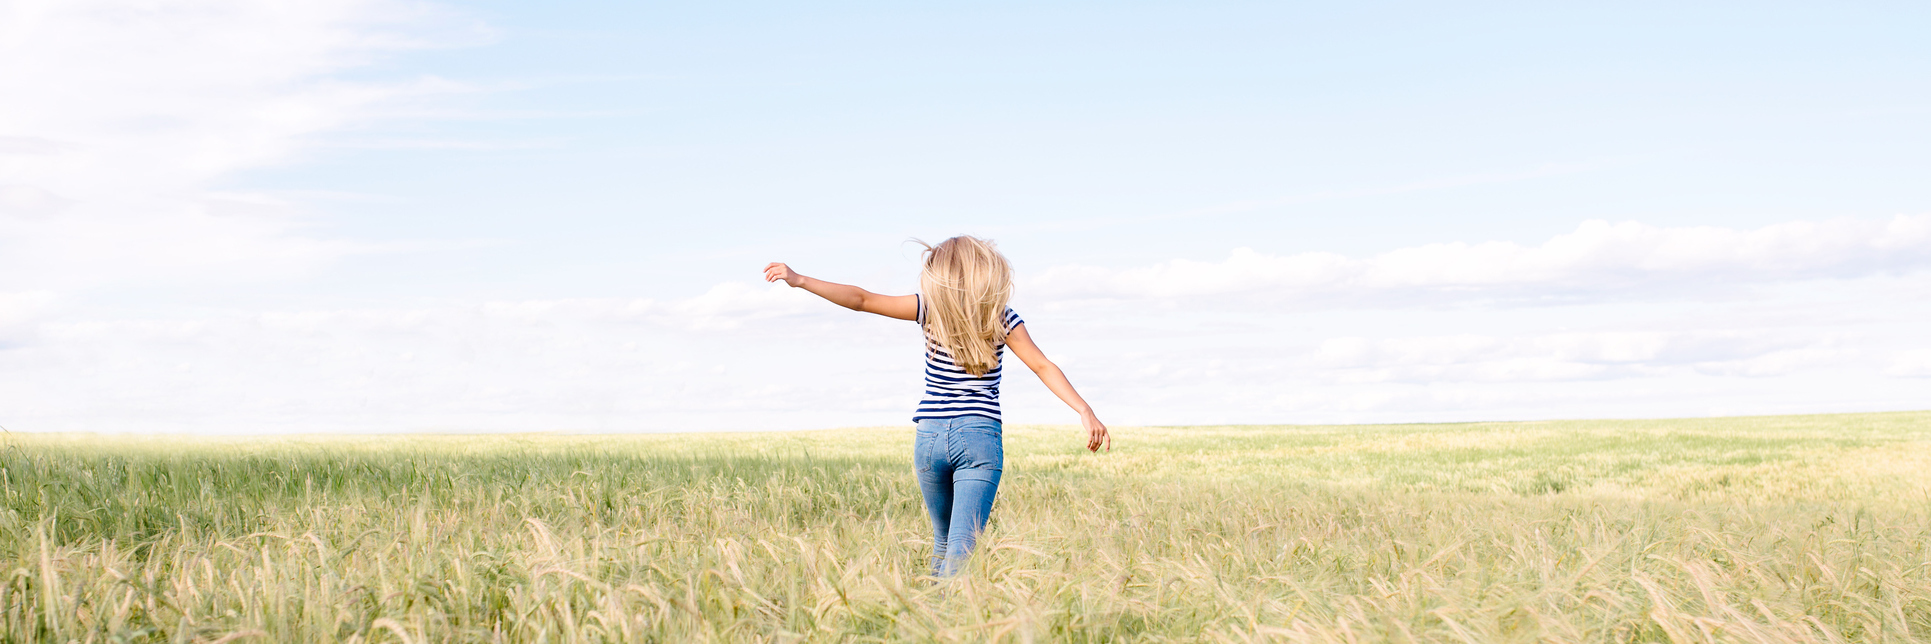 young blonde woman with arms outstretched in field